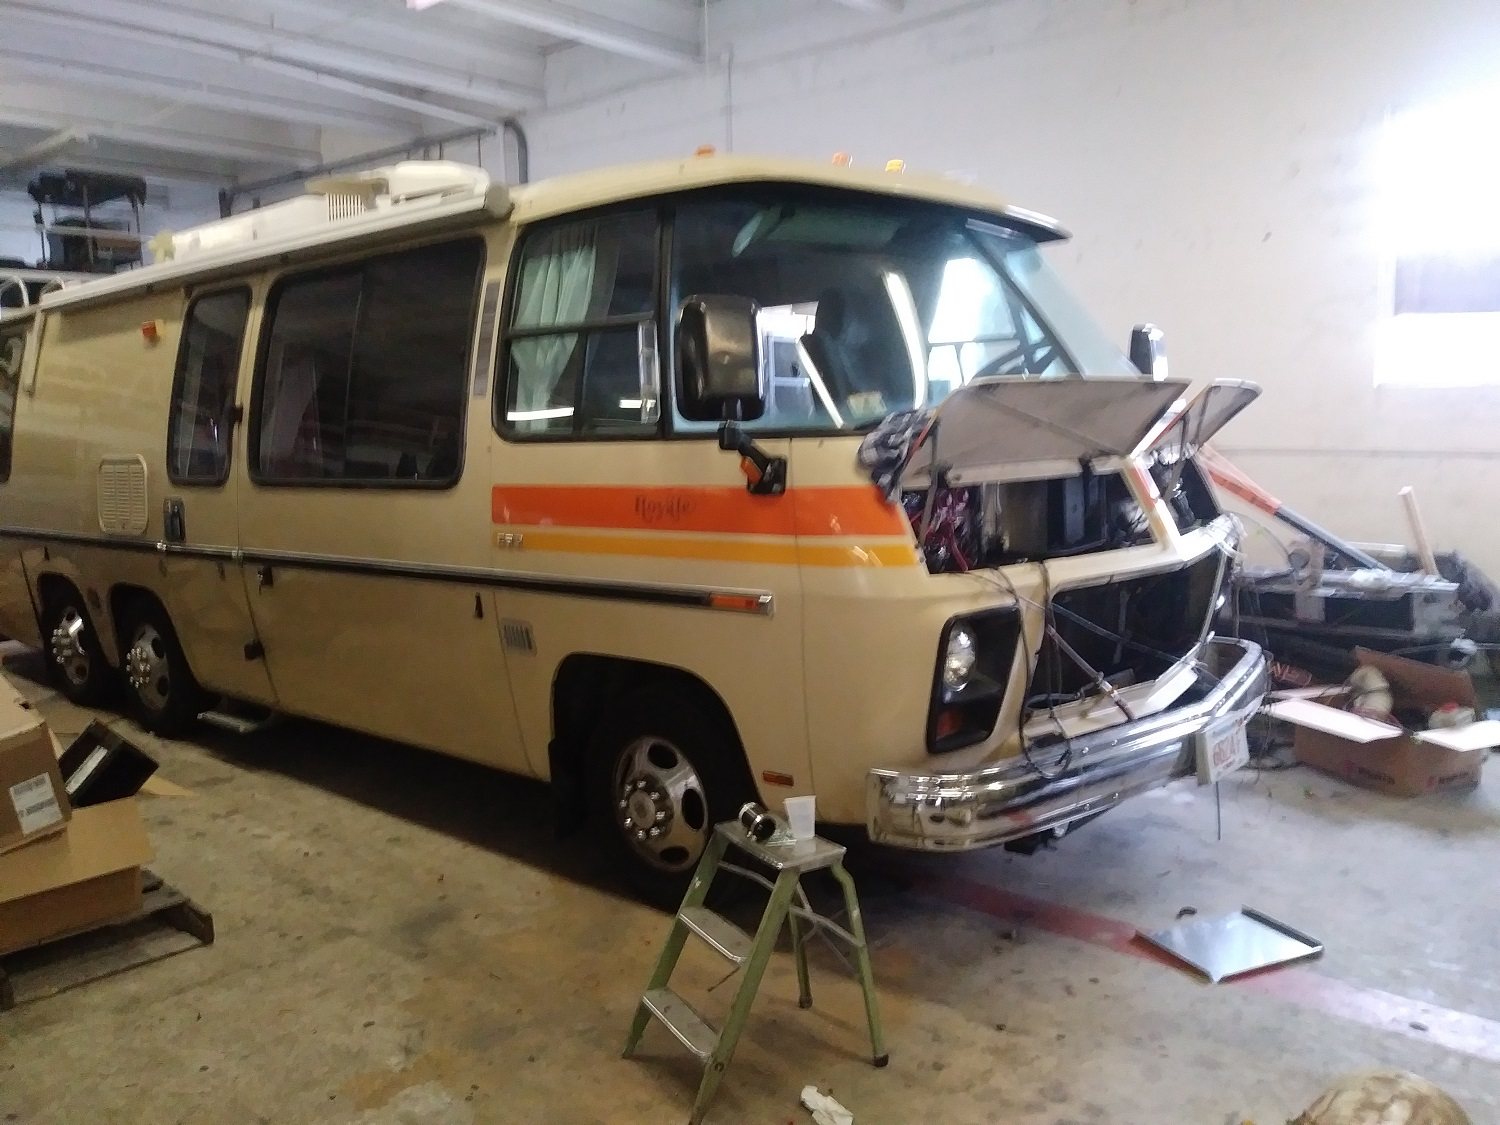 gmc motorhome suprise el ii air compressor replacement and more Chevrolet TrailBlazer Fuse Box our ambulance remount program is awesome but i still have piles of gmc stuff to do so that\u0027s on me! actually i just finished a repair project you guys might